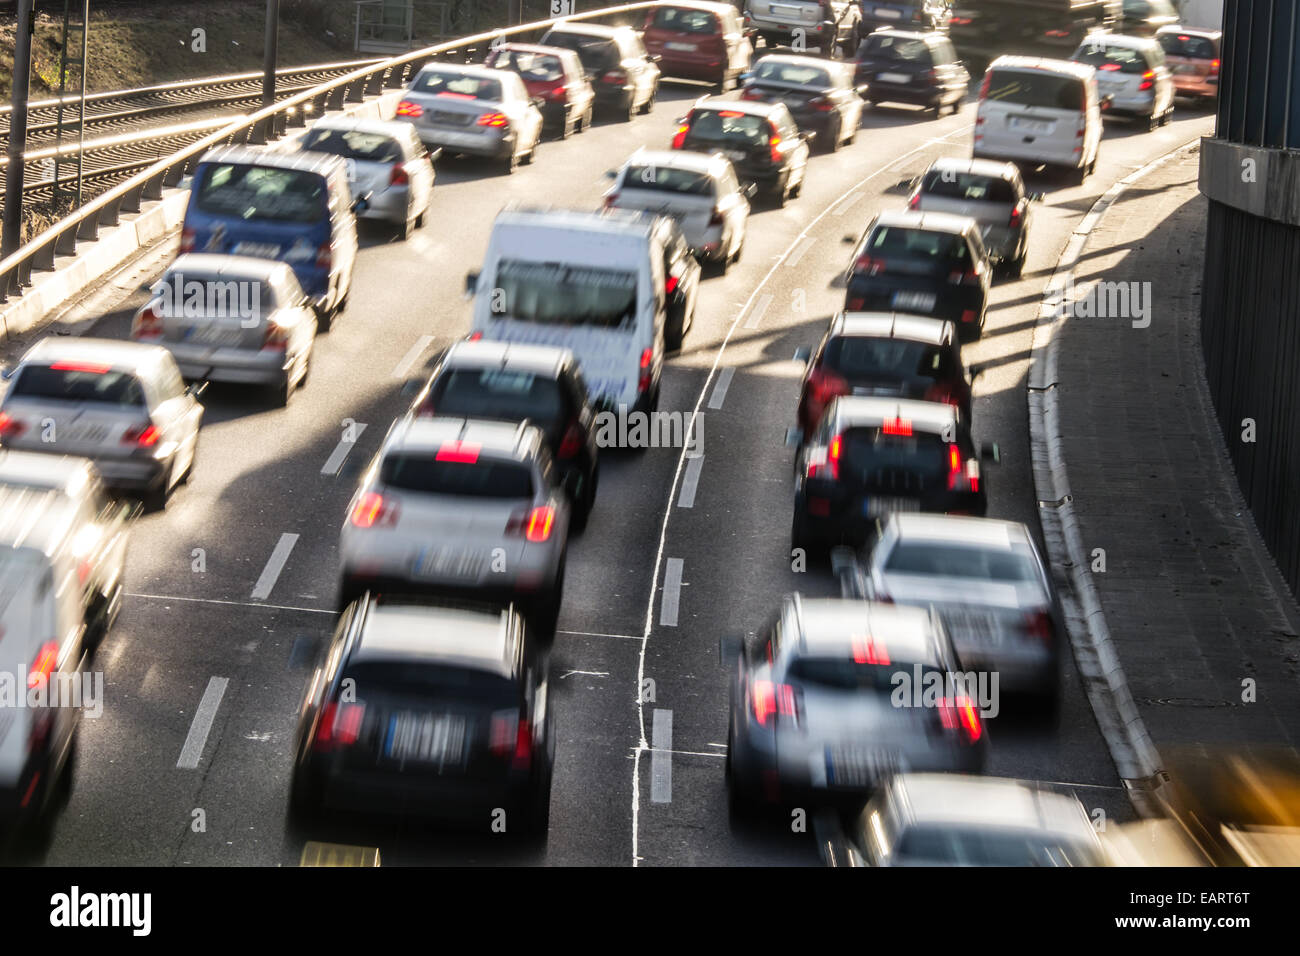 cars in a congestion on highway - Stock Image